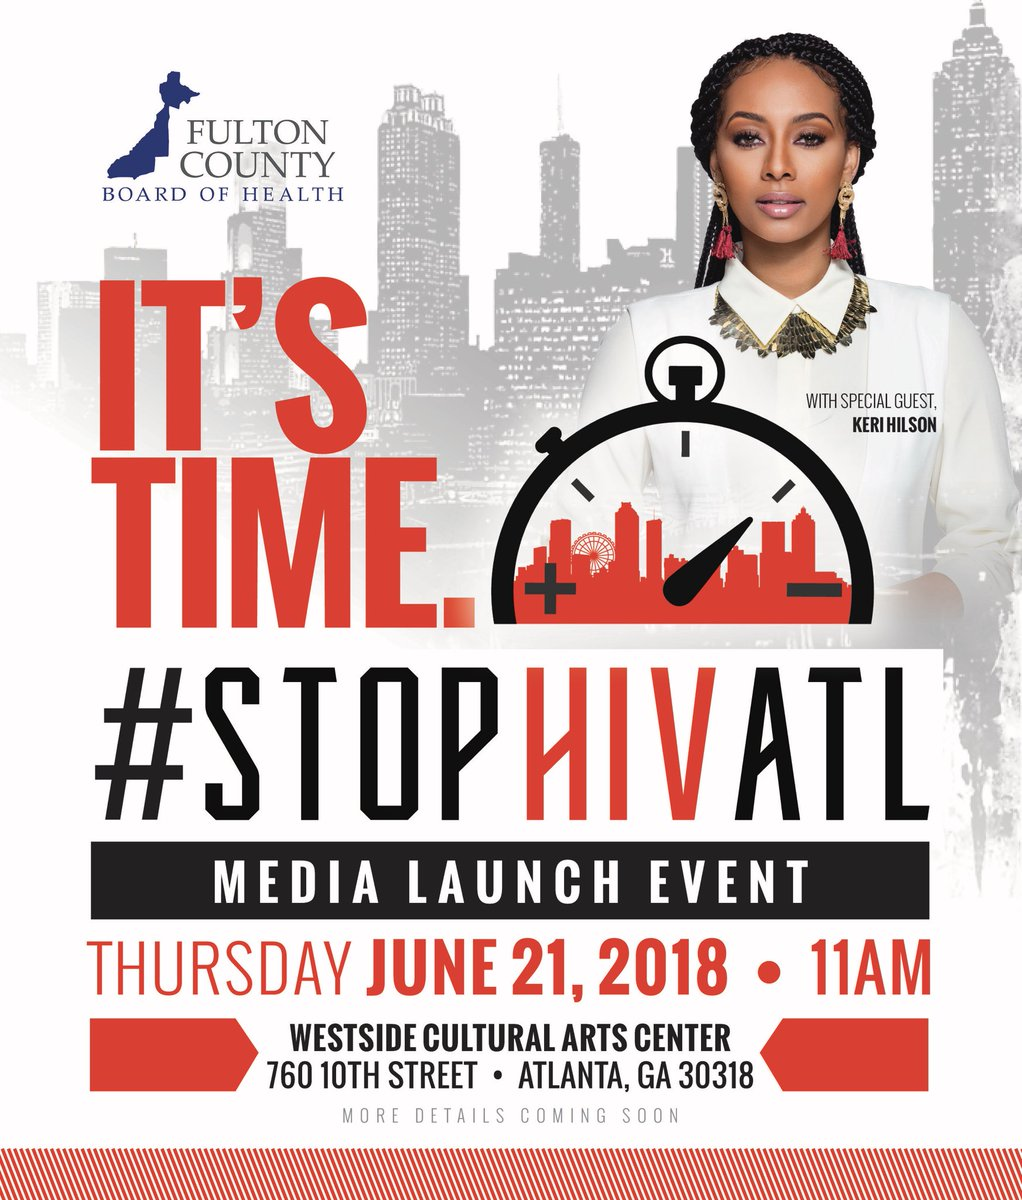 And then...if you're in ATL, come #STOPHIVATL with me today!!! https://t.co/t2hY1XTk6l